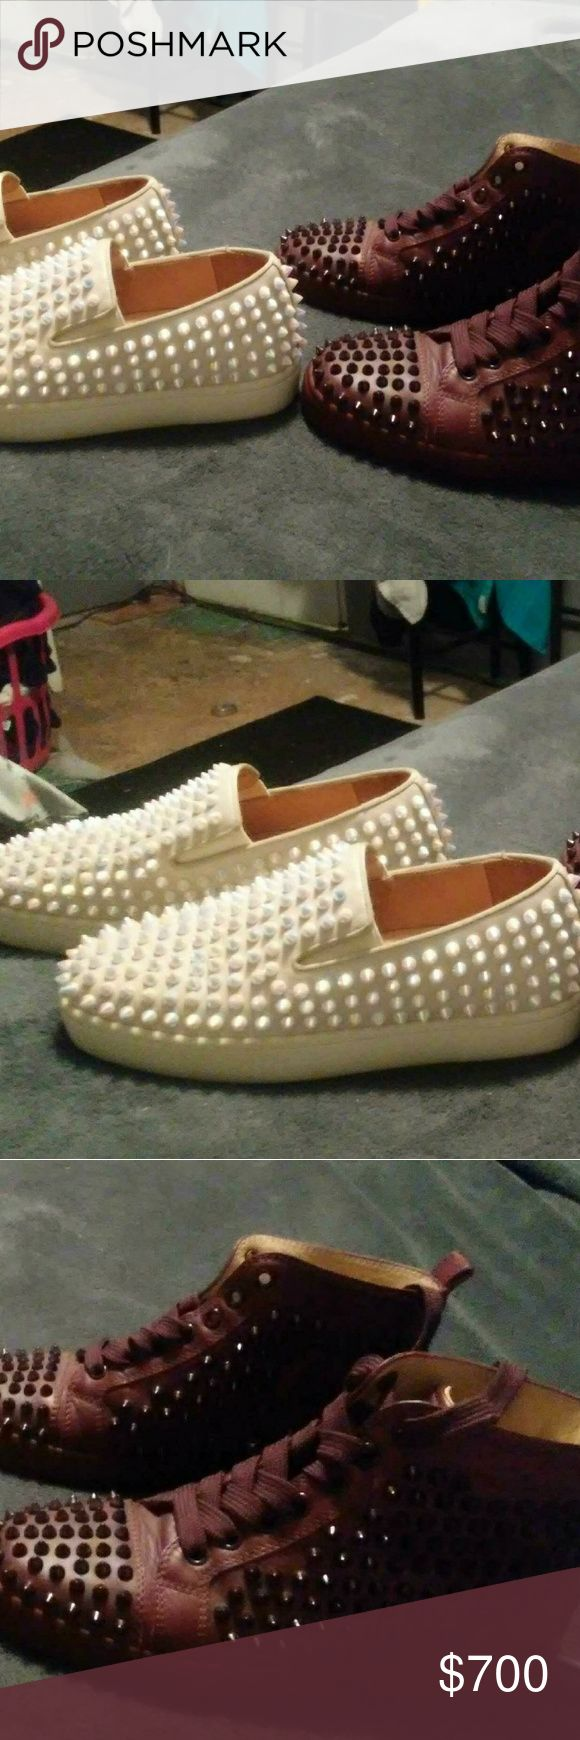 Christian Louboutin shoes One pair of white boat shoes and one pair of high to brown sneakers both size 5. Only wore once Christian Louboutin Shoes Flats  Loafers